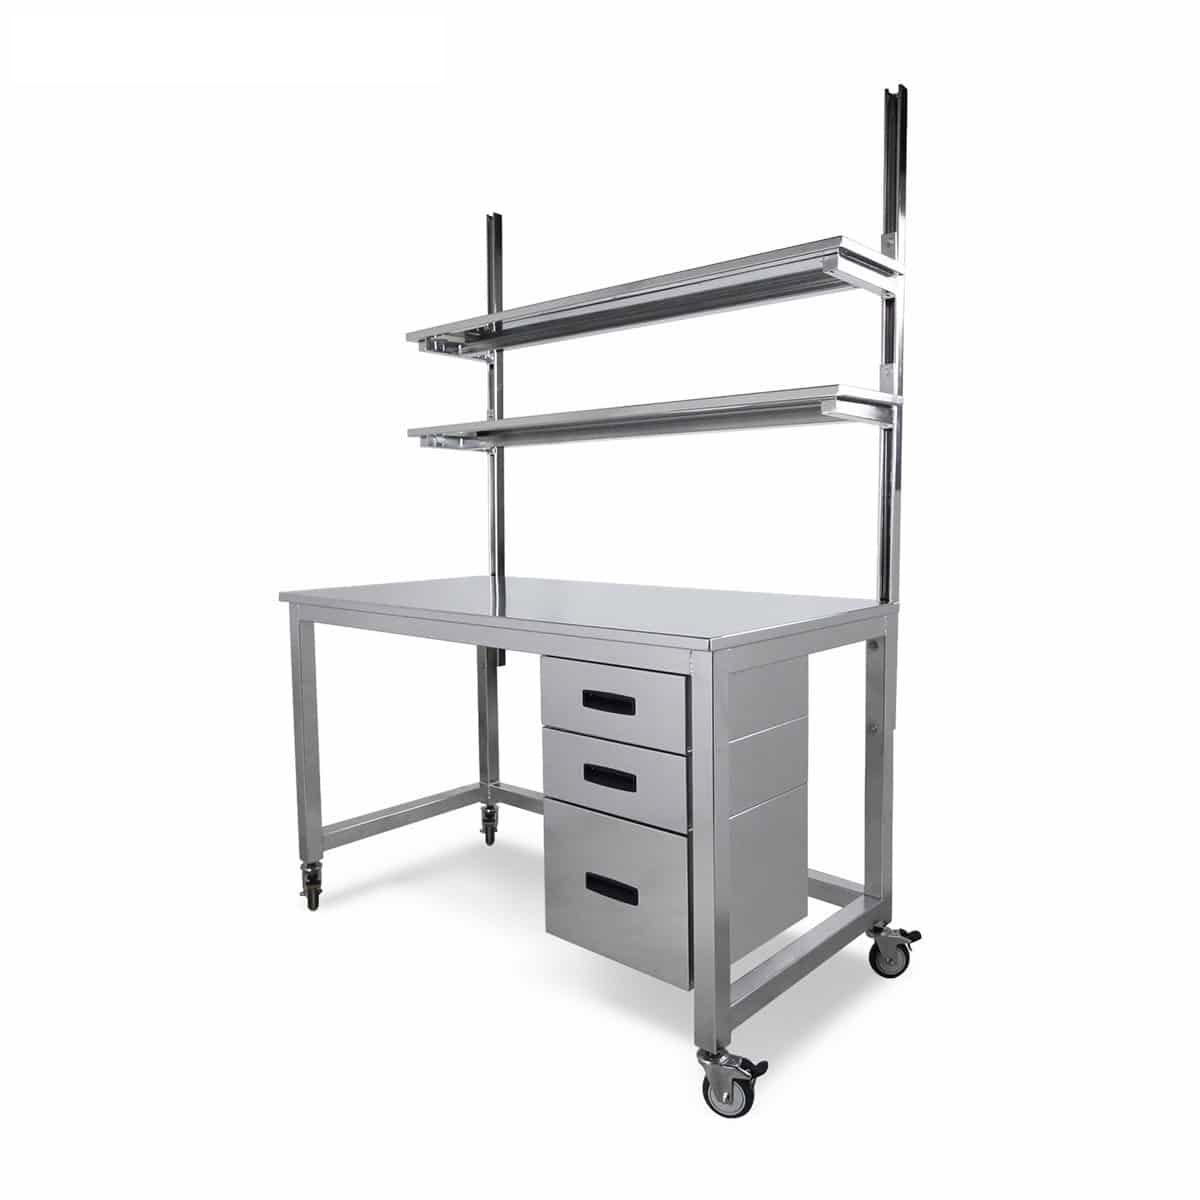 stainless steel benchmarx